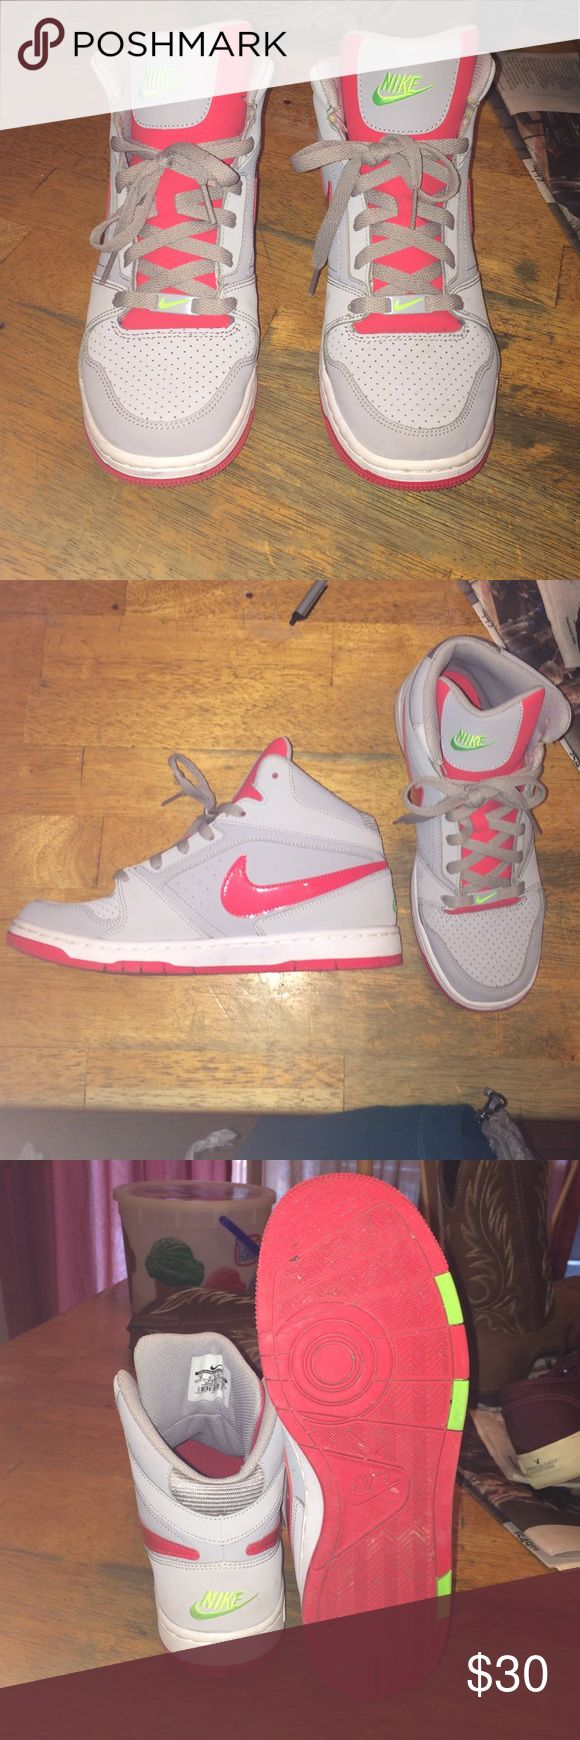 Nike Women's High Top Sneaker Size 9 Nike Hightop sneaker, worn a handful of times. Size 9, grey shoe with coral and lime green stitching Nike Shoes Sneakers